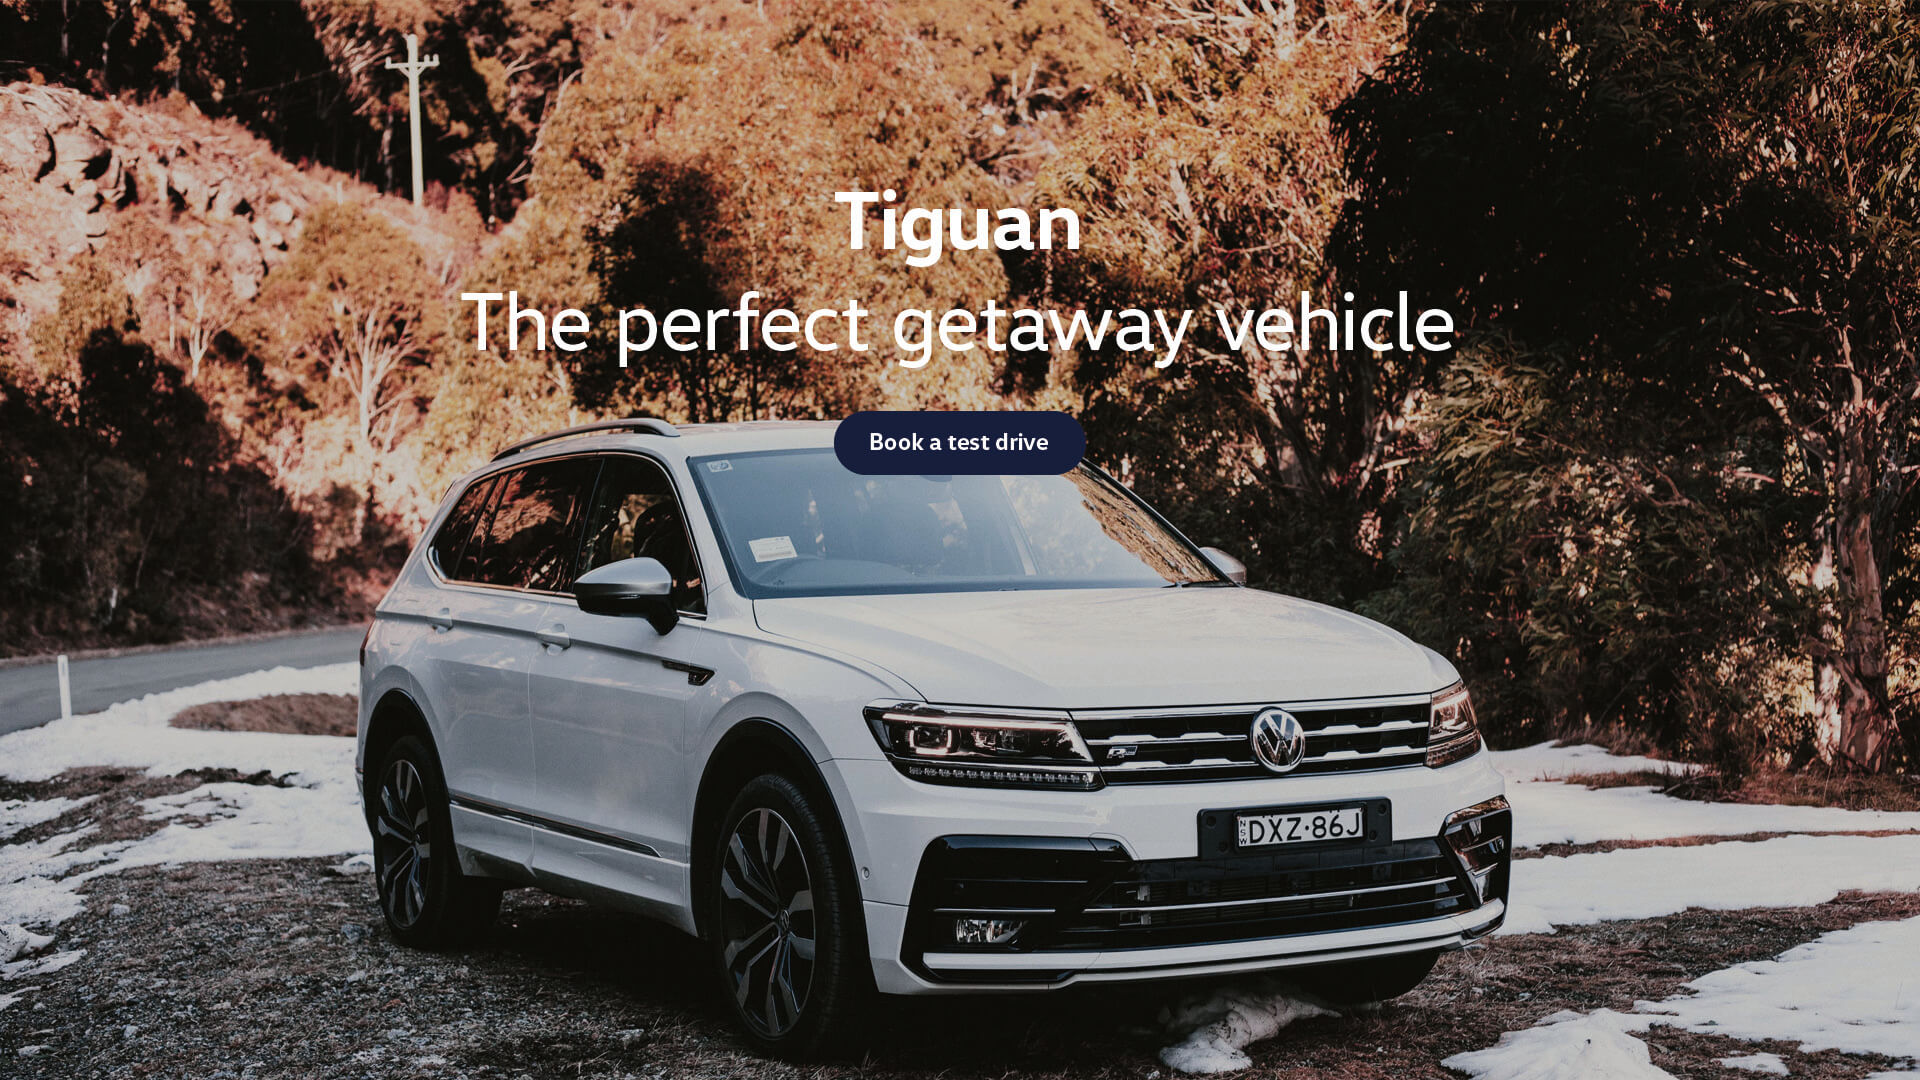 Volkswagen Tiguan. The perfect getaway vehicle. Test drive today at Woodleys Volkswagen, Tamworth